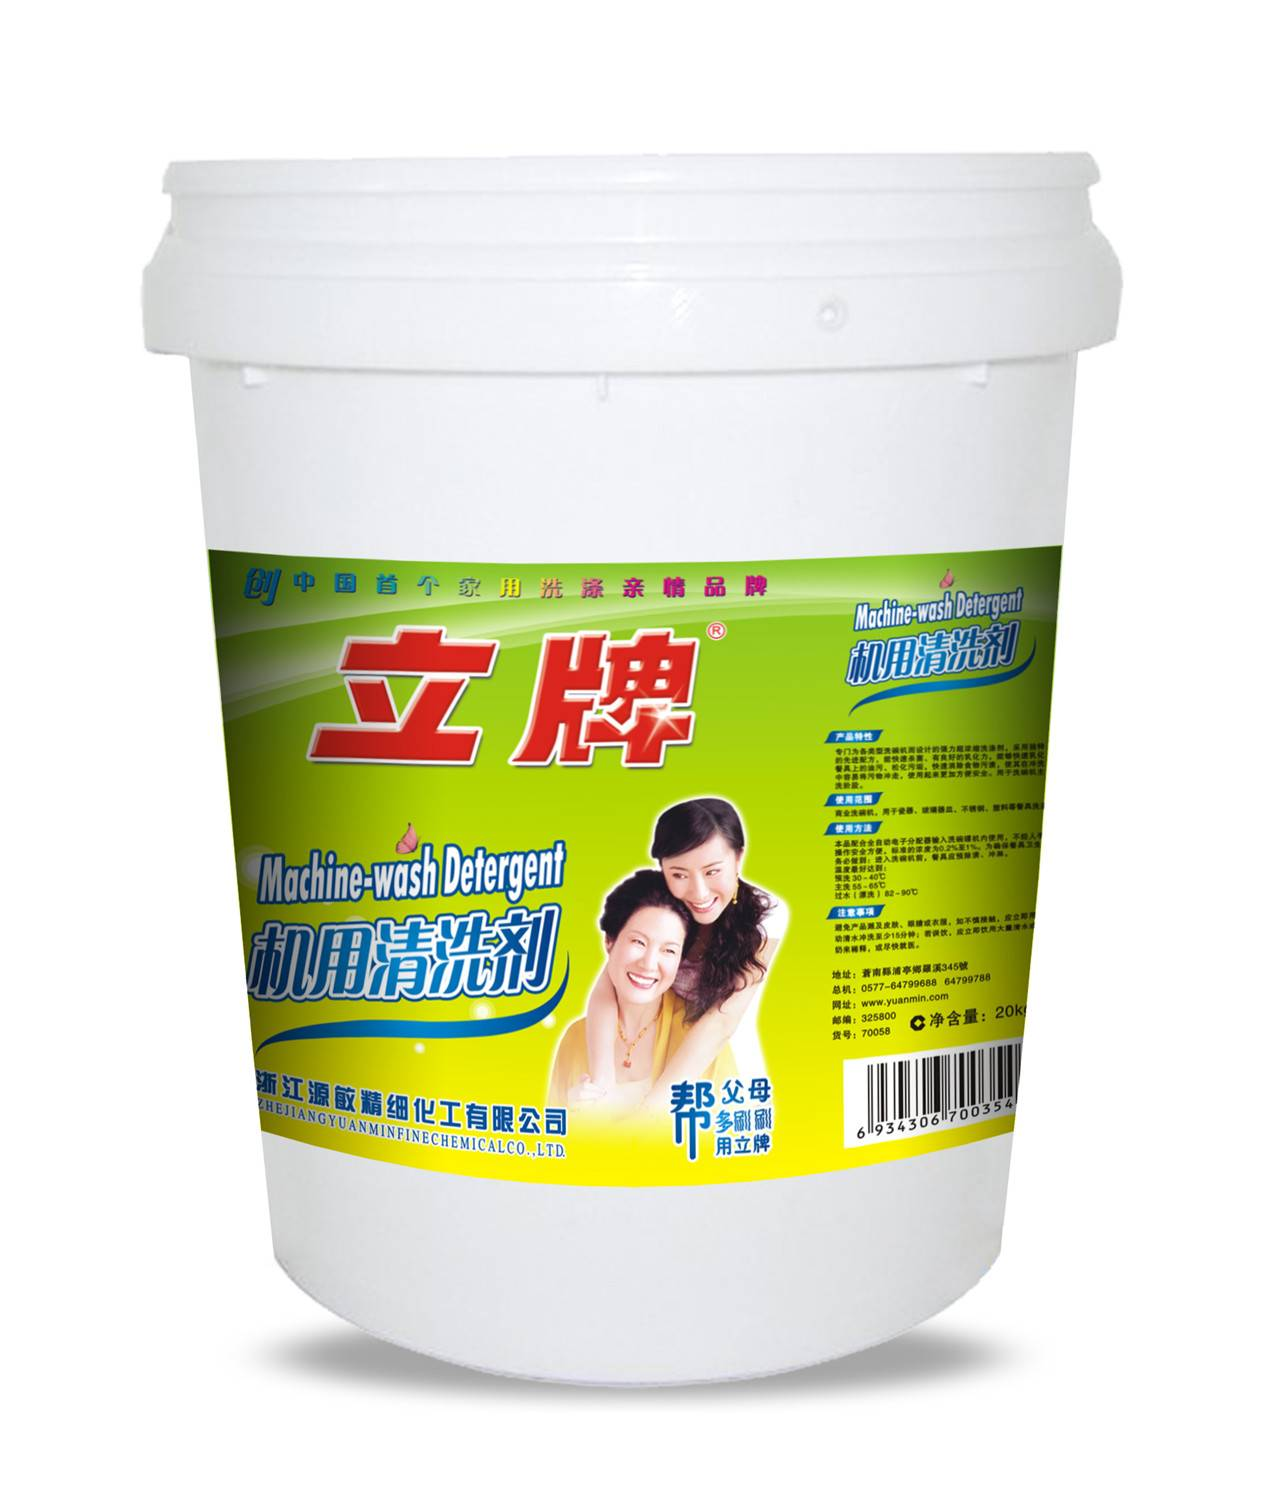 Lipai Machine-wash Detergent, 20KG, Dishiwashers Use, OEM,